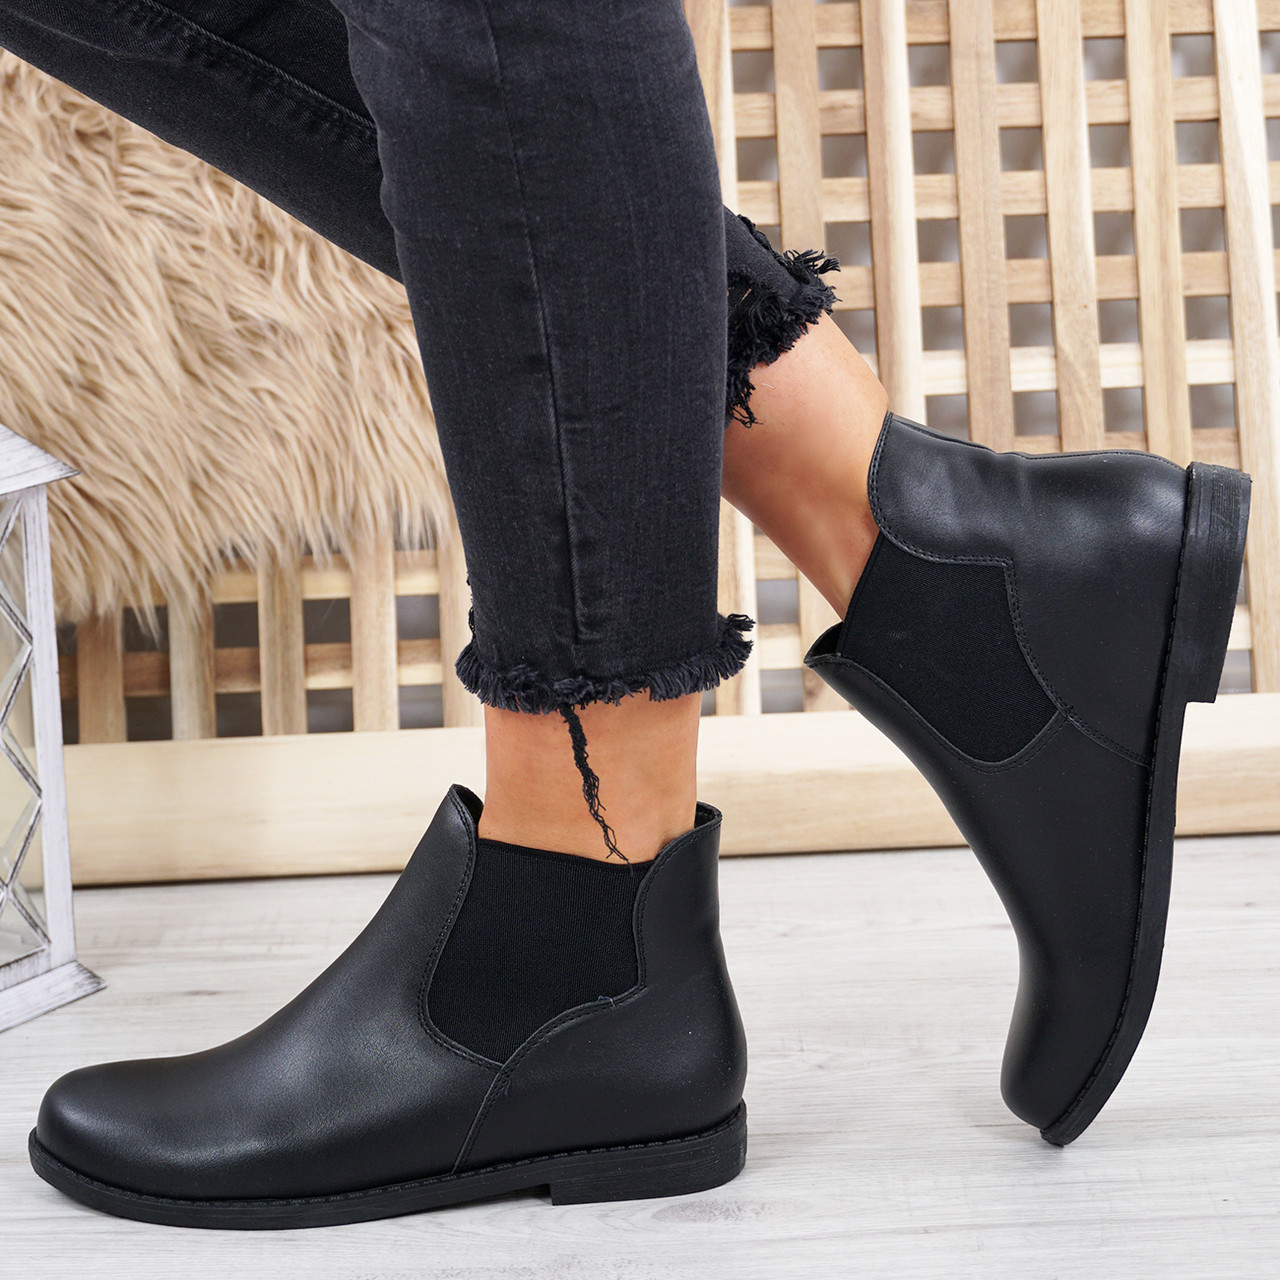 4a653a267b92 New Womens Chelsea Ankle Boots Ladies Low Block Heel Comfy Slip On Shoes  Size Uk